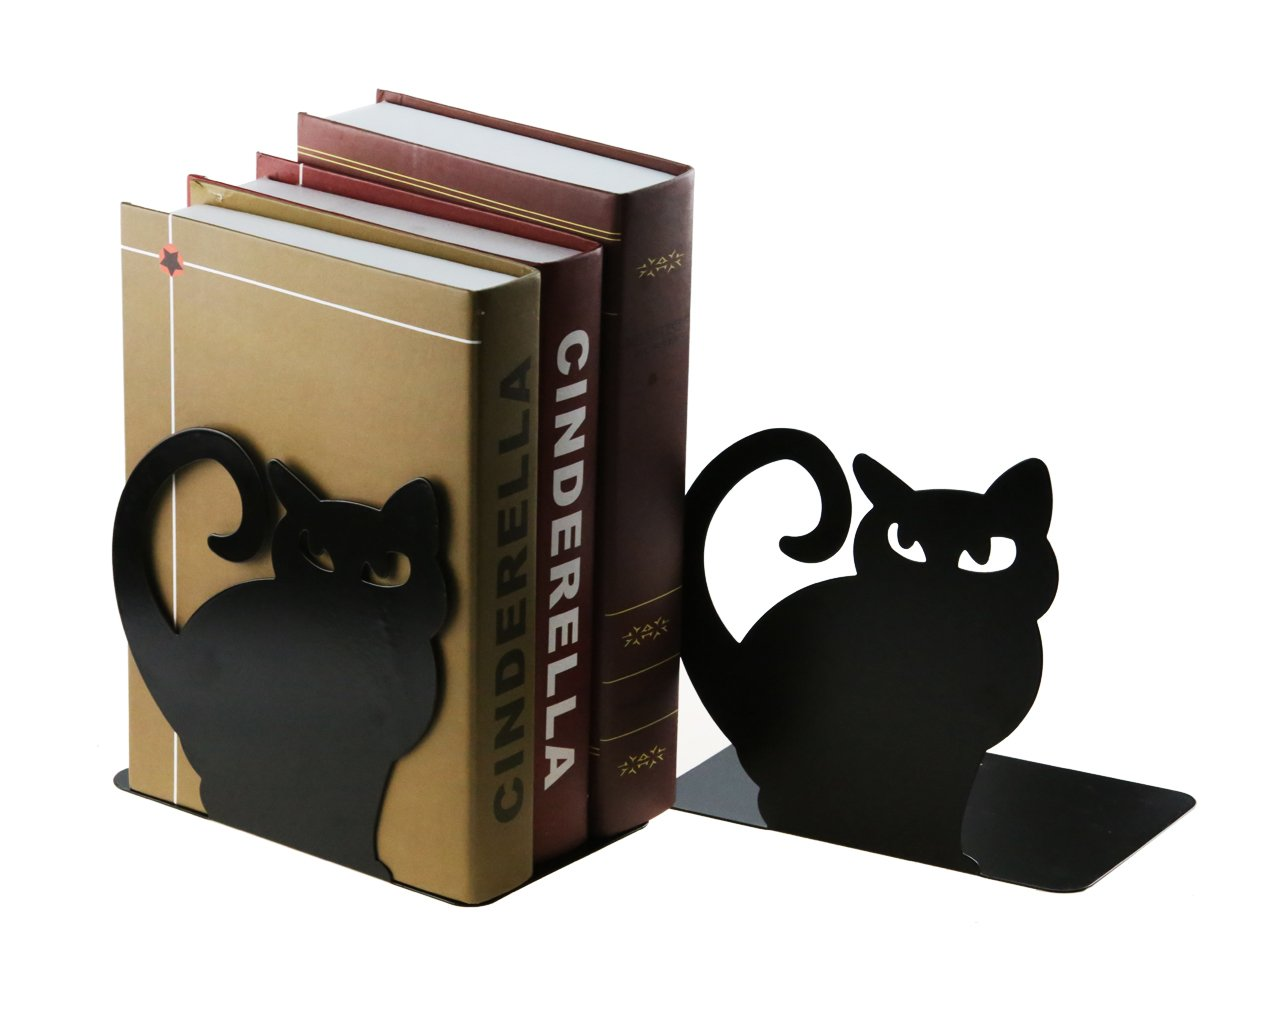 Cute Vivid Lovely Persian Cat Book Organizer Metal Bookends For Kids School Library Desk Study Home Office Decoration Gift (Black) by Apol (Image #7)